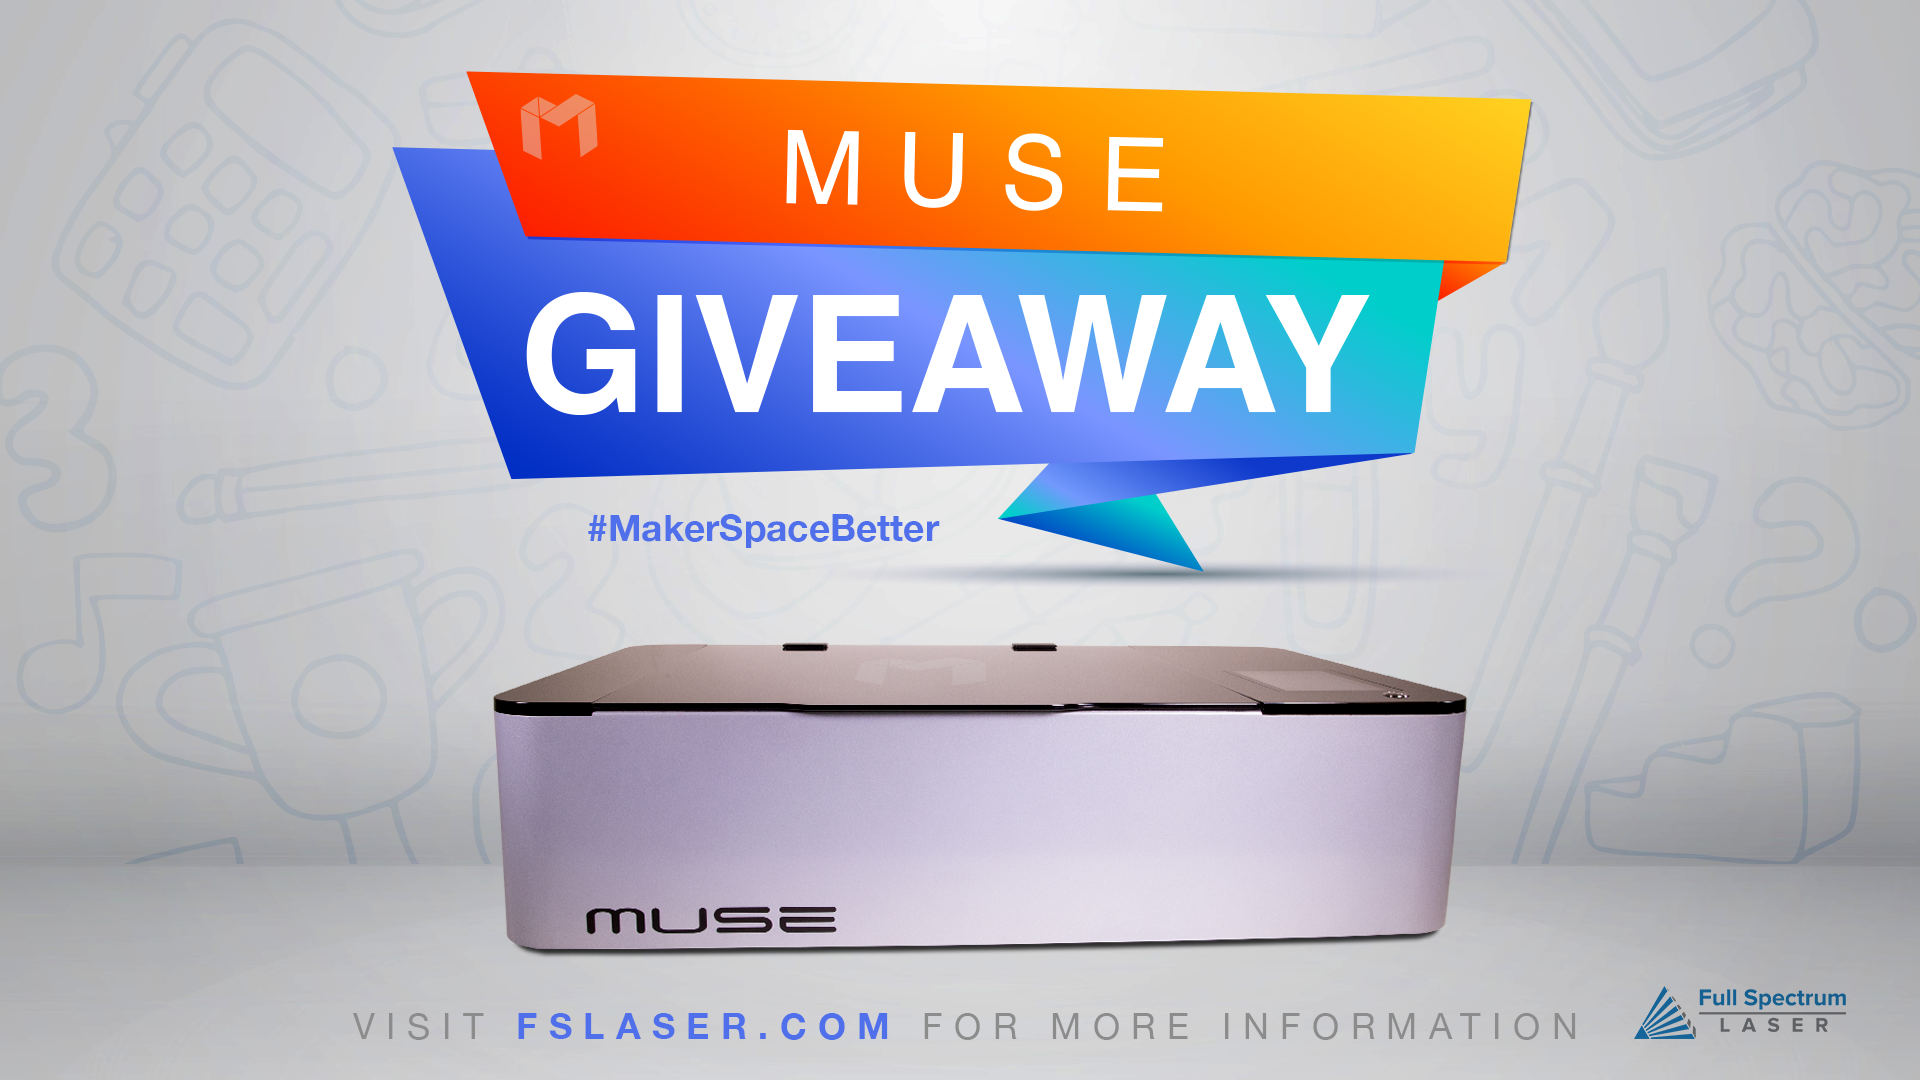 MuseGiveAway_Youtube.png